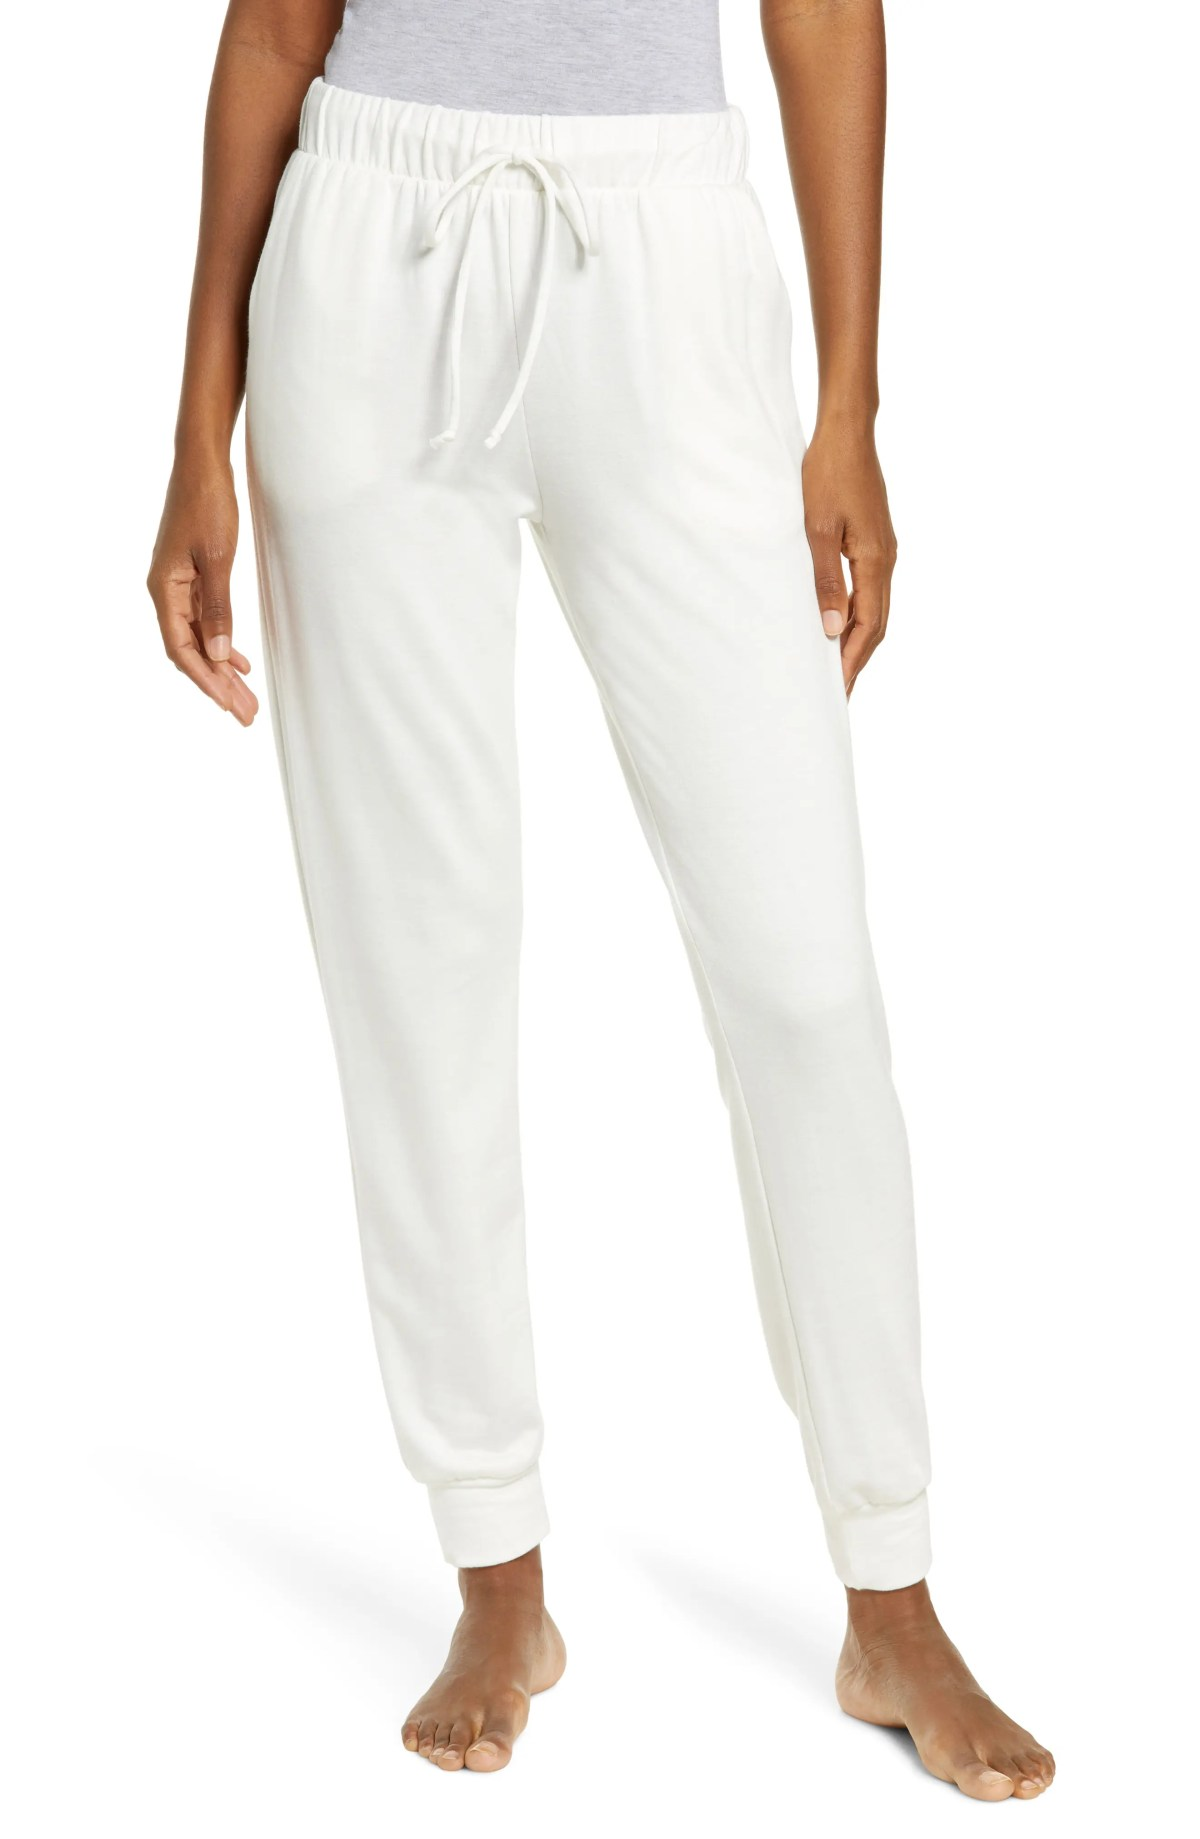 SOCIALITE Lounge Joggers, Main, color, OFF WHITE